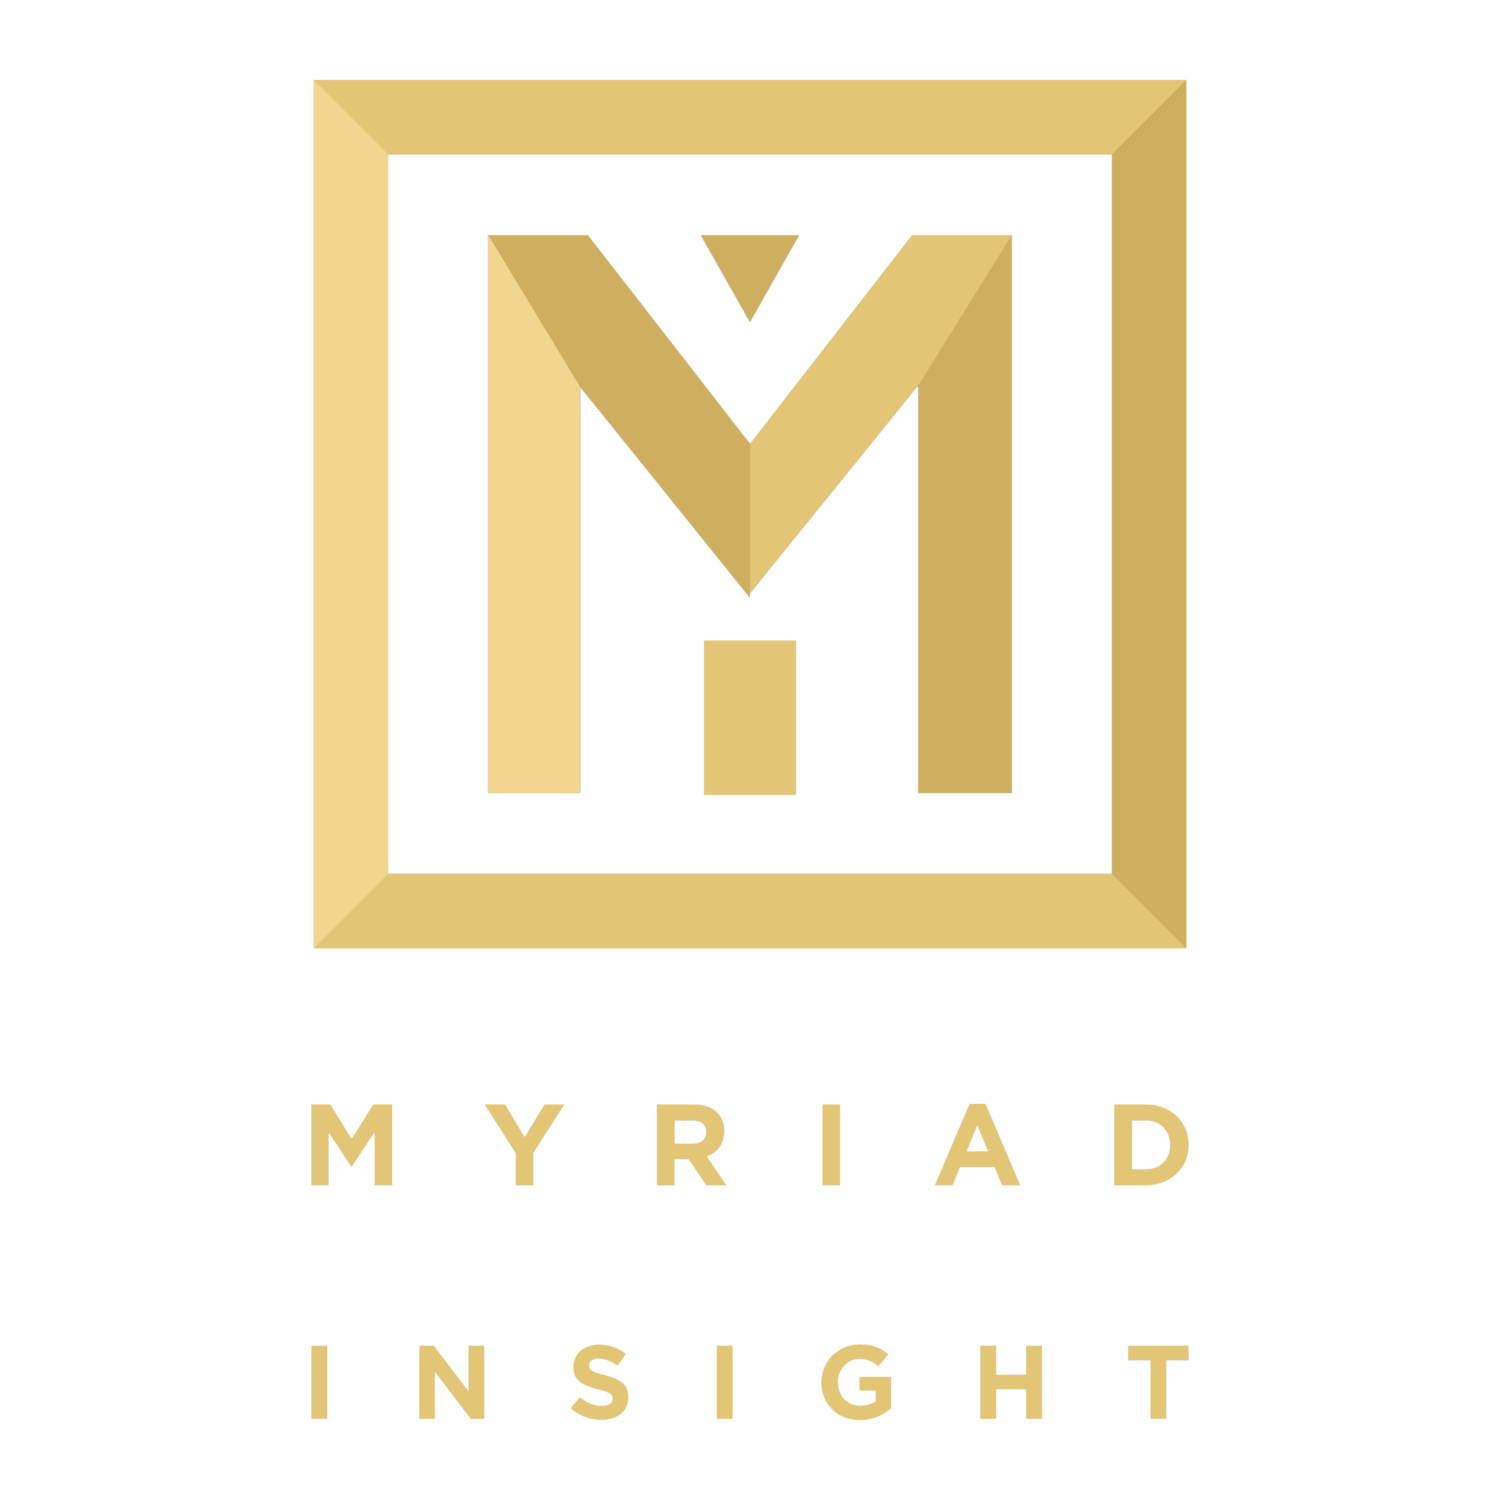 Myriad Insight